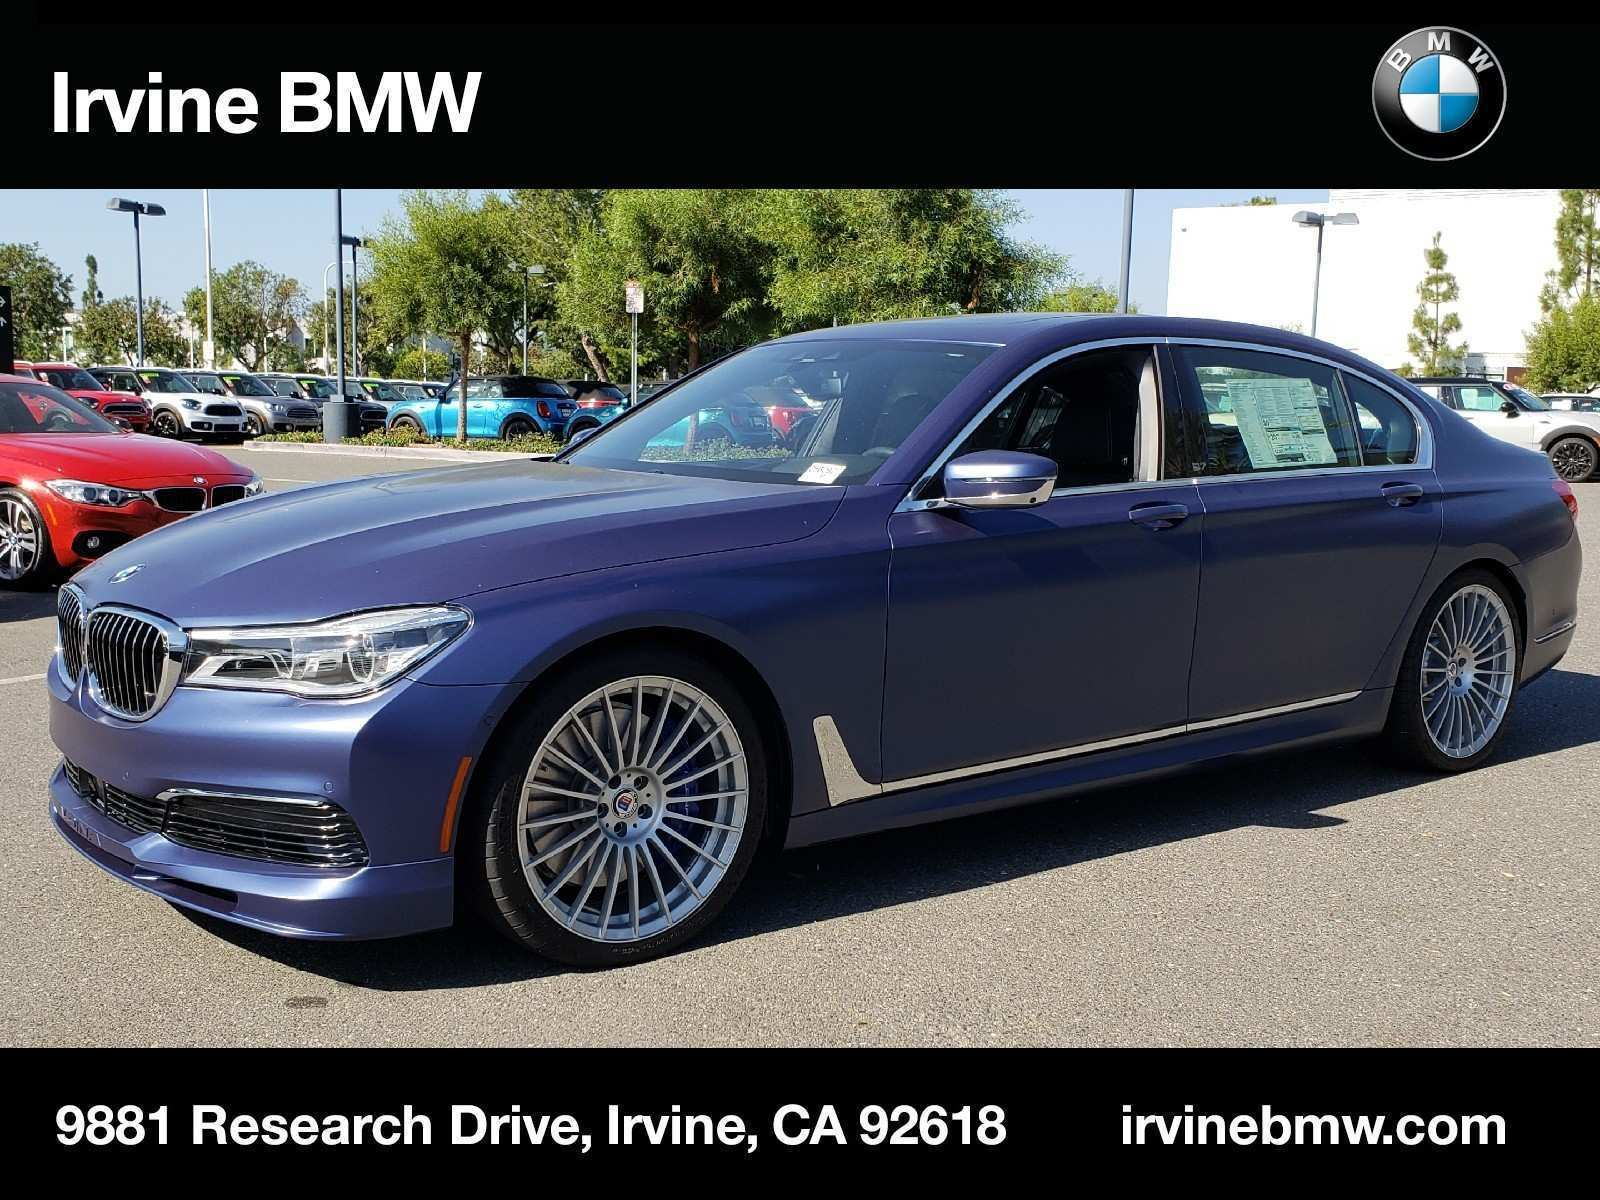 84 All New 2019 Bmw Alpina B7 For Sale Ratings for 2019 Bmw Alpina B7 For Sale